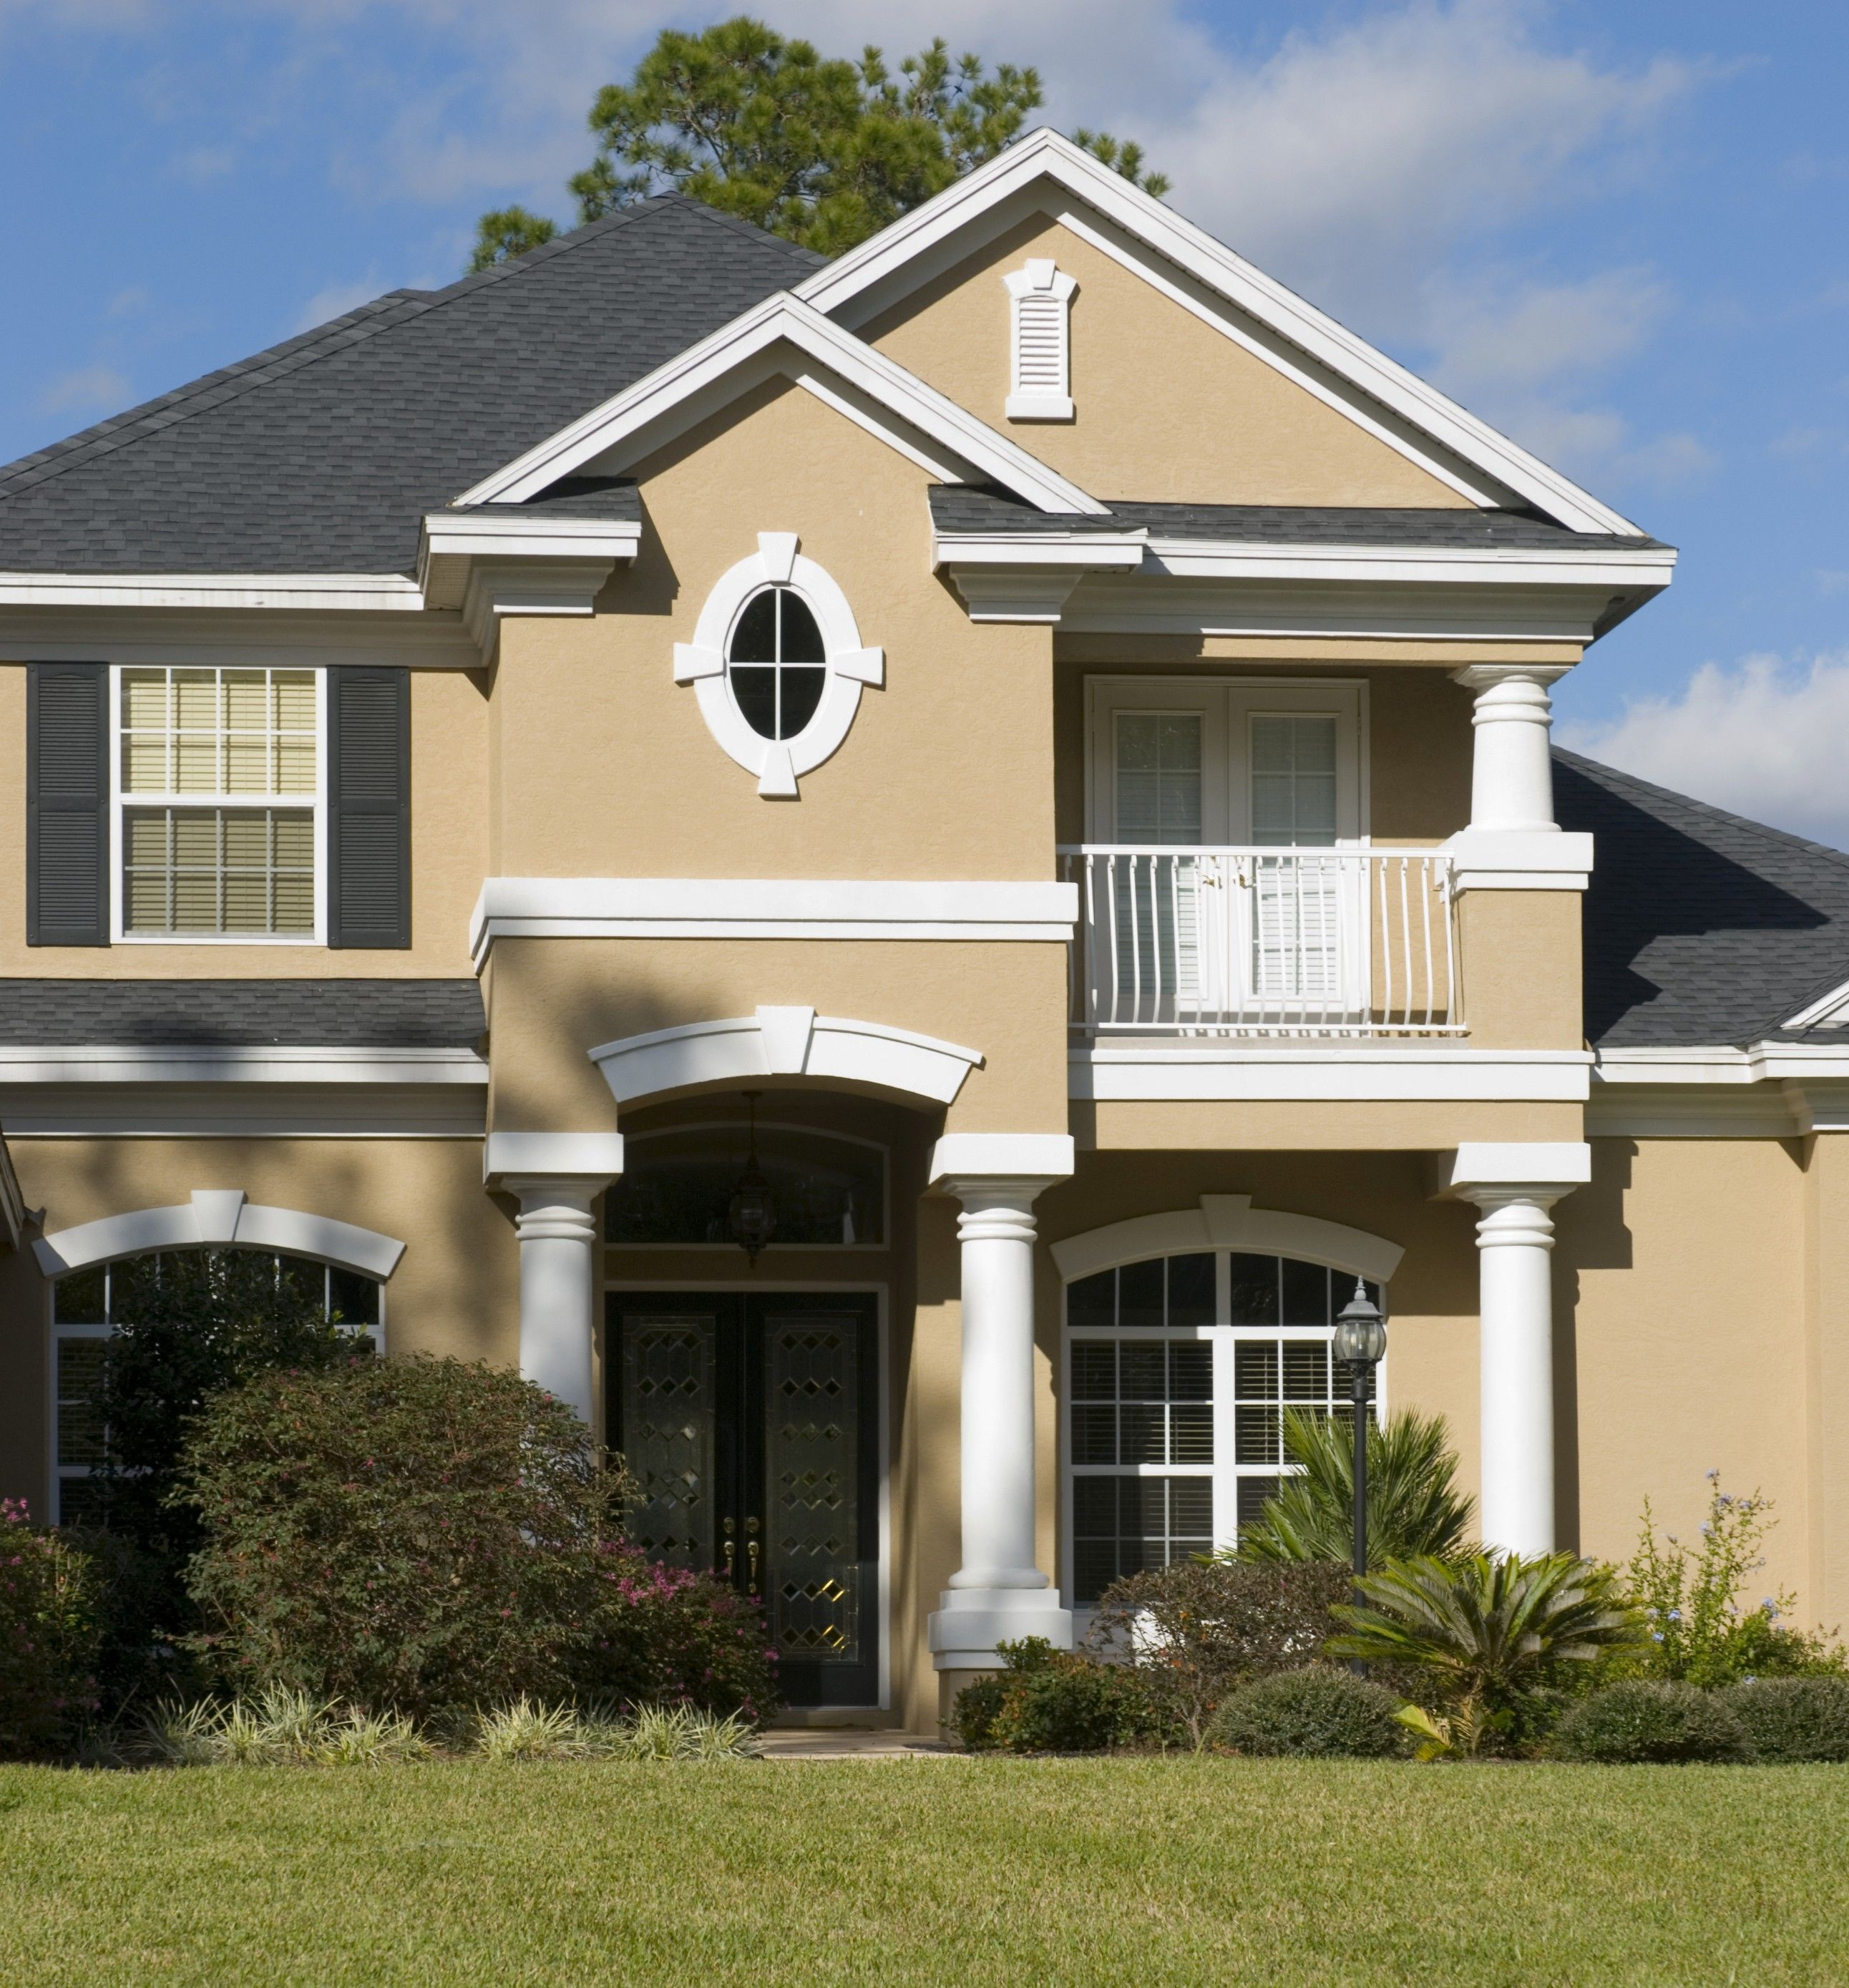 www exterior house colors   Color Chemistry and house paint     www exterior house colors   Color Chemistry and house paint   Elegant  Painting